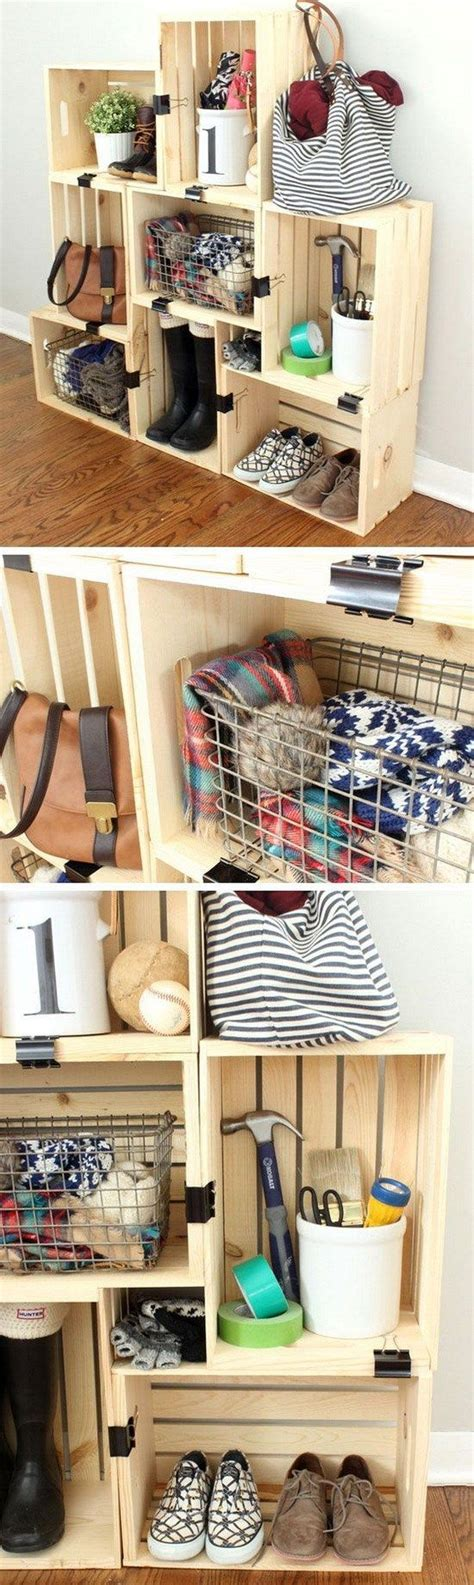 organize a studio apartment best 25 studio apartment organization ideas on pinterest studio apartments diy projects